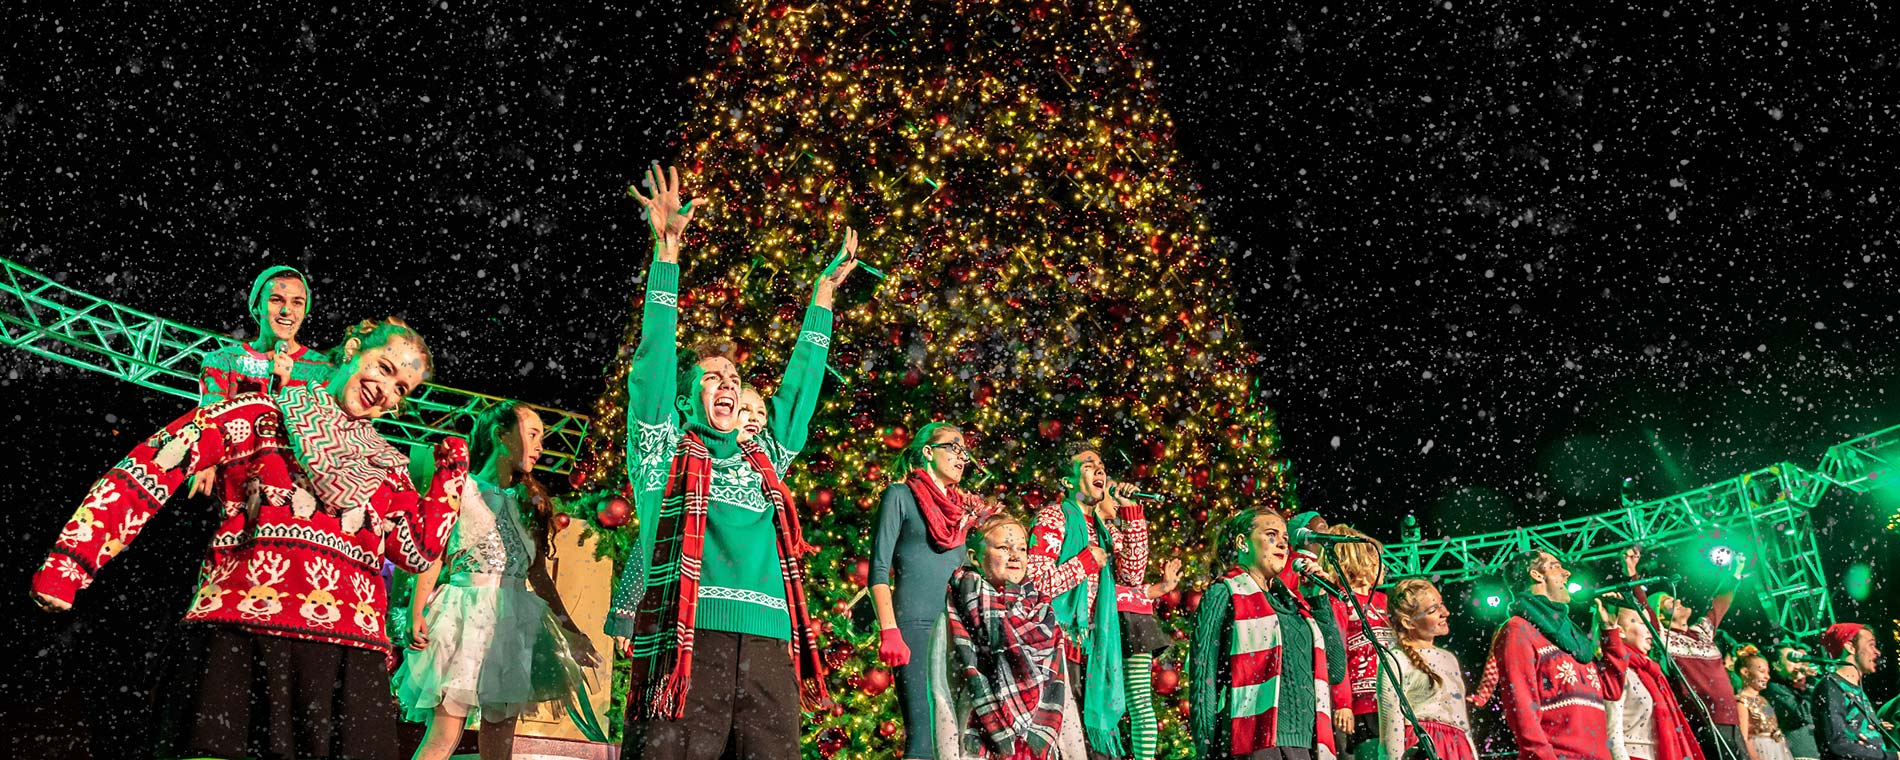 New Year's Eve Celebration at Carowinds' Holiday Event